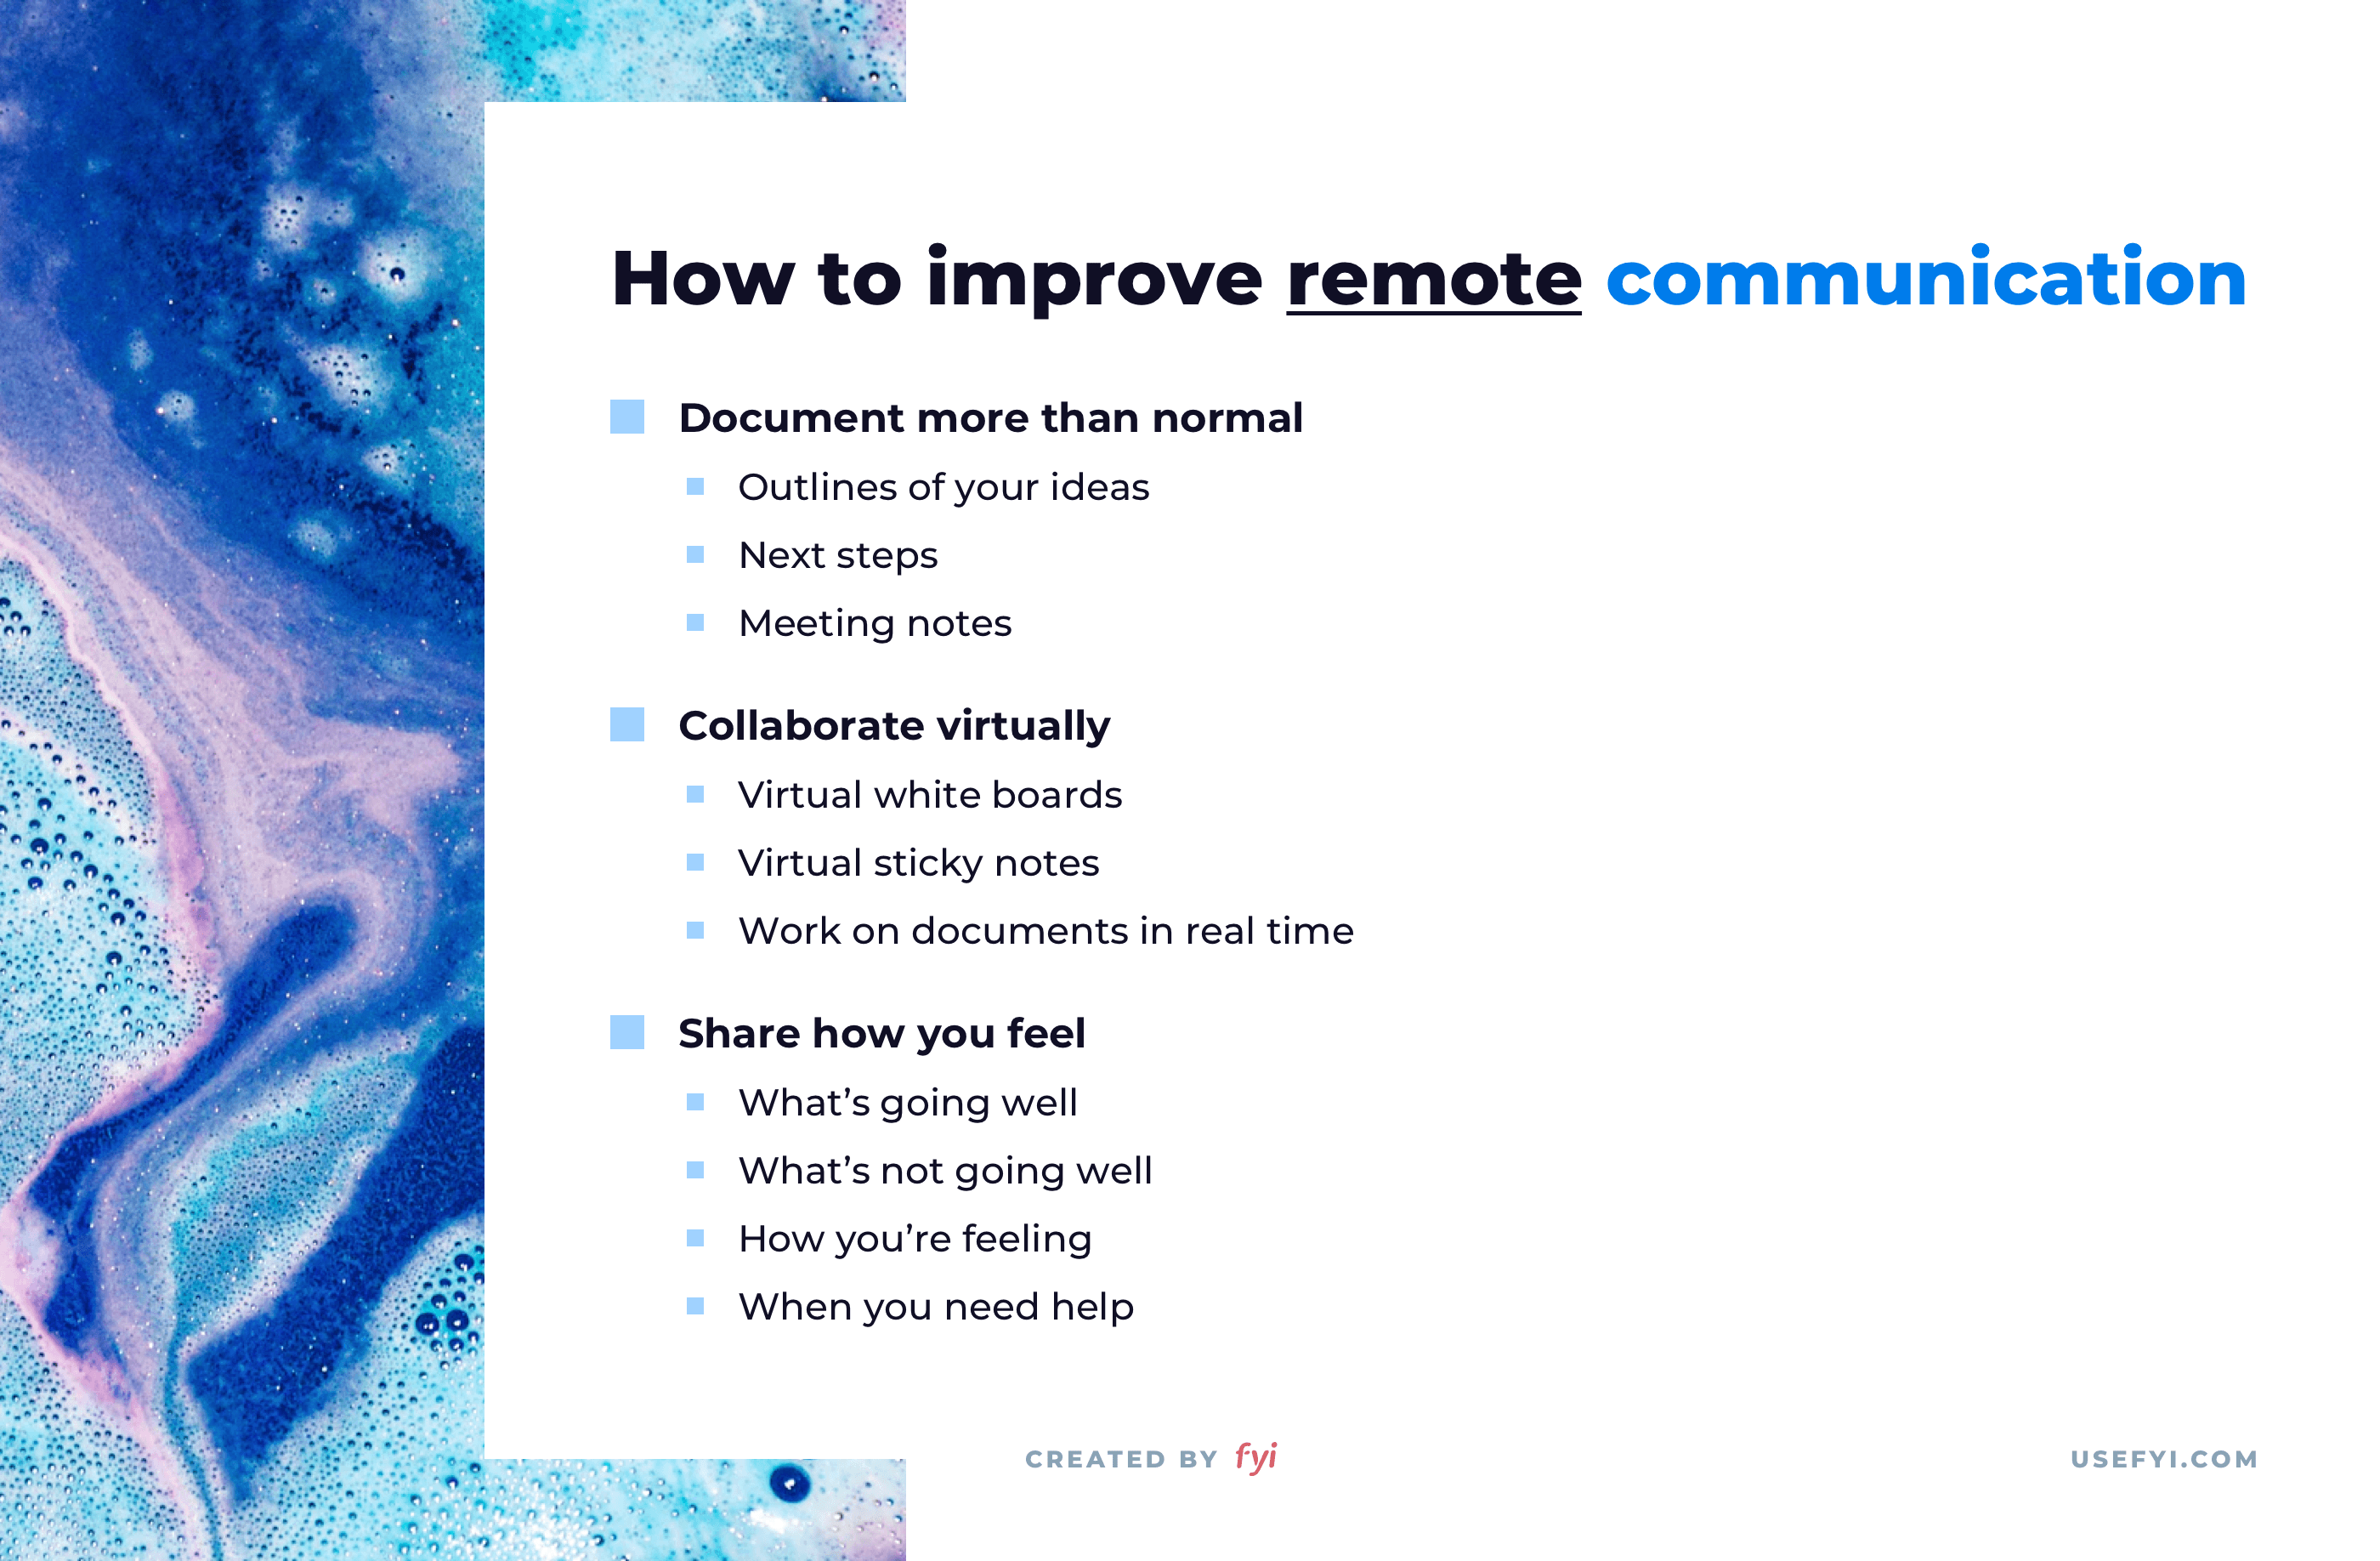 improve remote communication